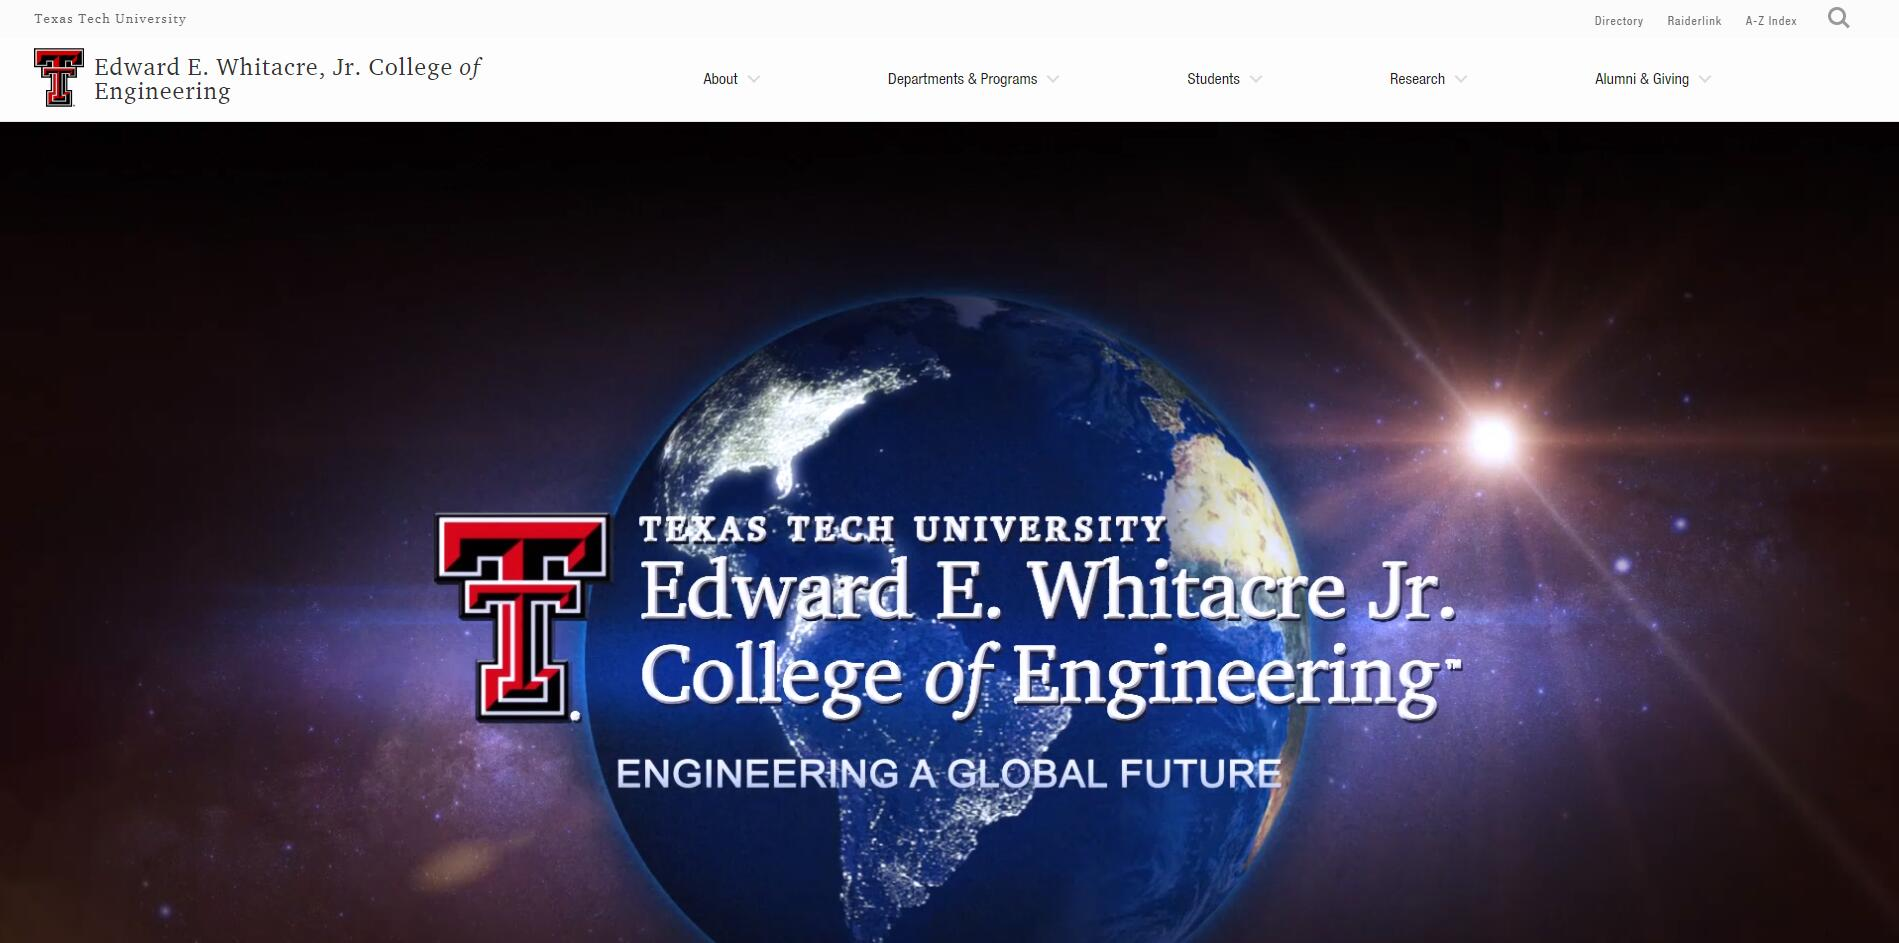 The Edward E. Whitacre Jr. College of Engineering at Texas Tech University